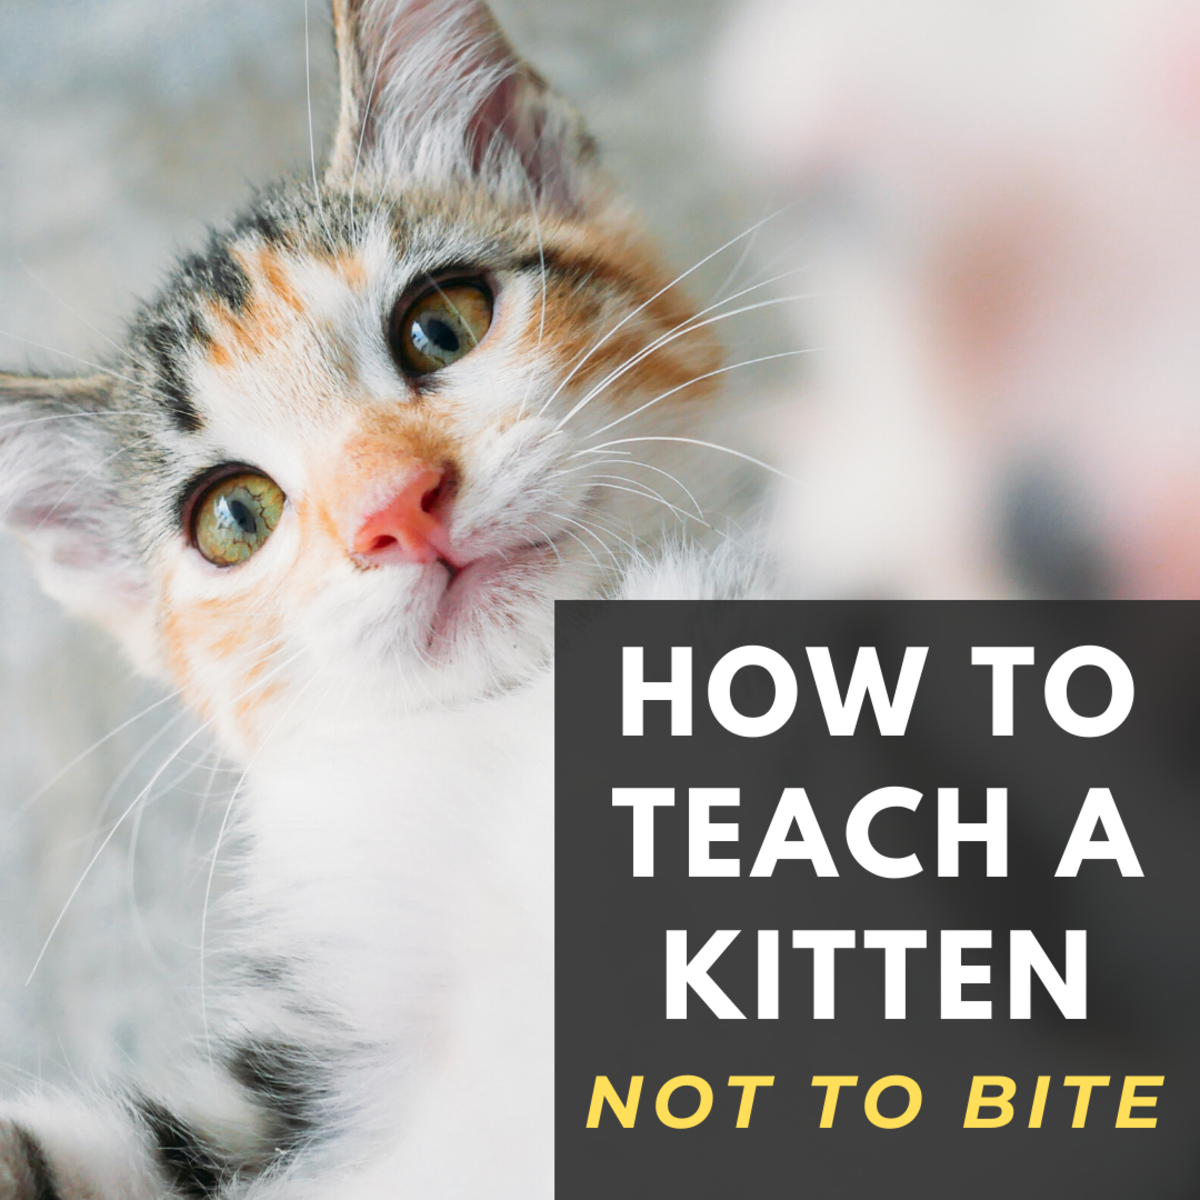 Why Does My Kitten Bite Me?